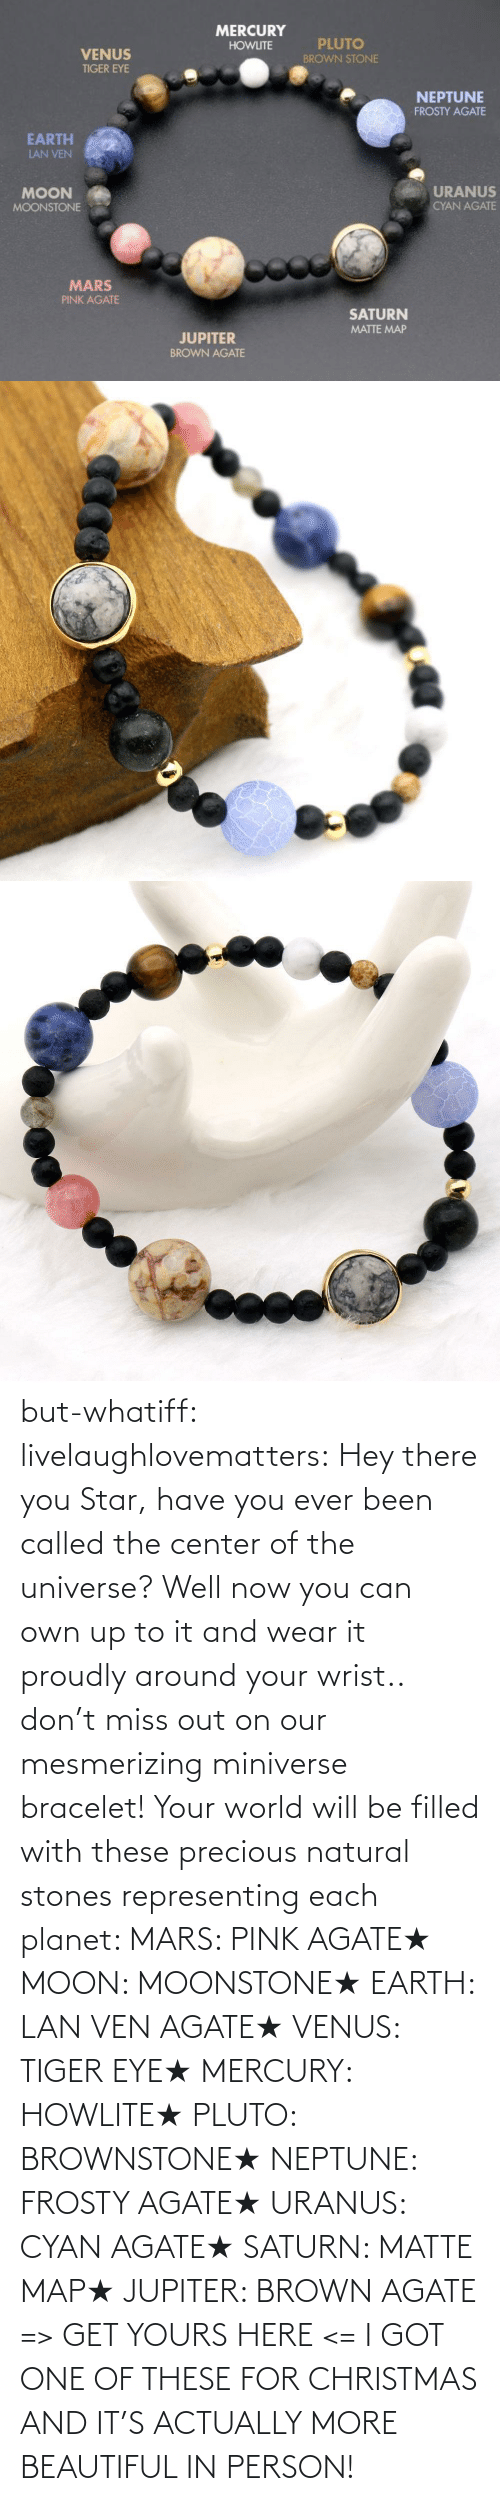 Precious: but-whatiff:  livelaughlovematters:  Hey there you Star, have you ever been called the center of the universe? Well now you can own up to it and wear it proudly around your wrist.. don't miss out on our mesmerizing miniverse bracelet! Your world will be filled with these precious natural stones representing each planet:  MARS: PINK AGATE★ MOON: MOONSTONE★ EARTH: LAN VEN AGATE★ VENUS: TIGER EYE★ MERCURY: HOWLITE★ PLUTO: BROWNSTONE★ NEPTUNE: FROSTY AGATE★ URANUS: CYAN AGATE★ SATURN: MATTE MAP★ JUPITER: BROWN AGATE => GET YOURS HERE <=  I GOT ONE OF THESE FOR CHRISTMAS AND IT'S ACTUALLY MORE BEAUTIFUL IN PERSON!